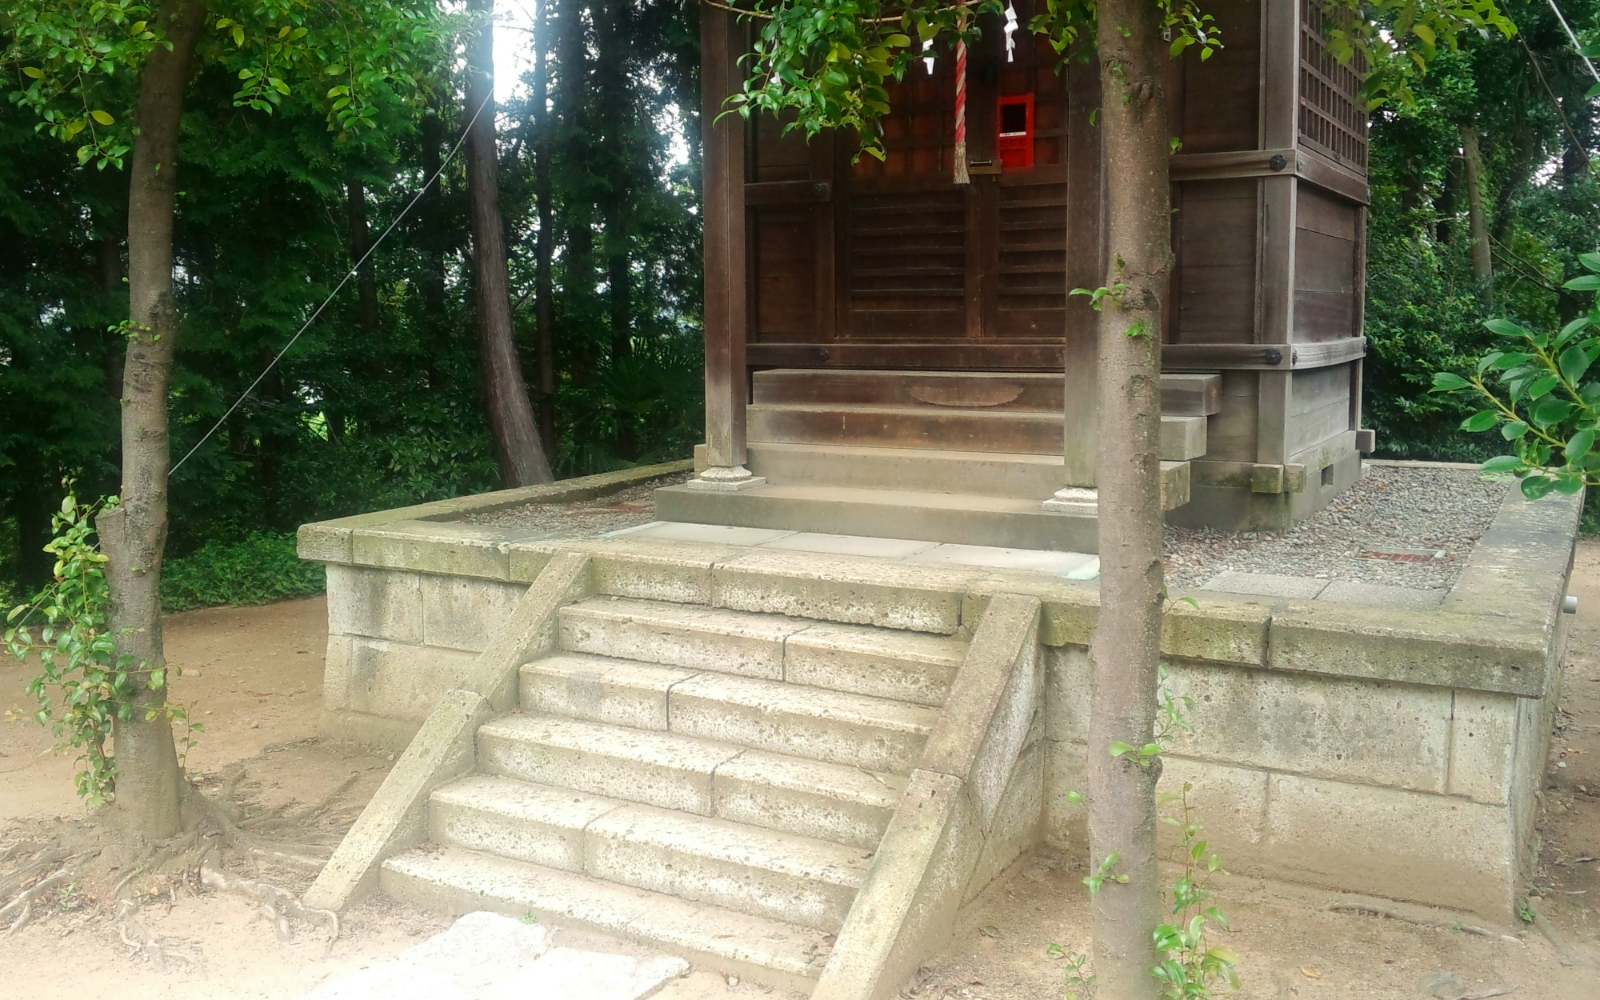 Konpiragu, a shrine that served as an animation model for a scene in Whisper of the Heart.